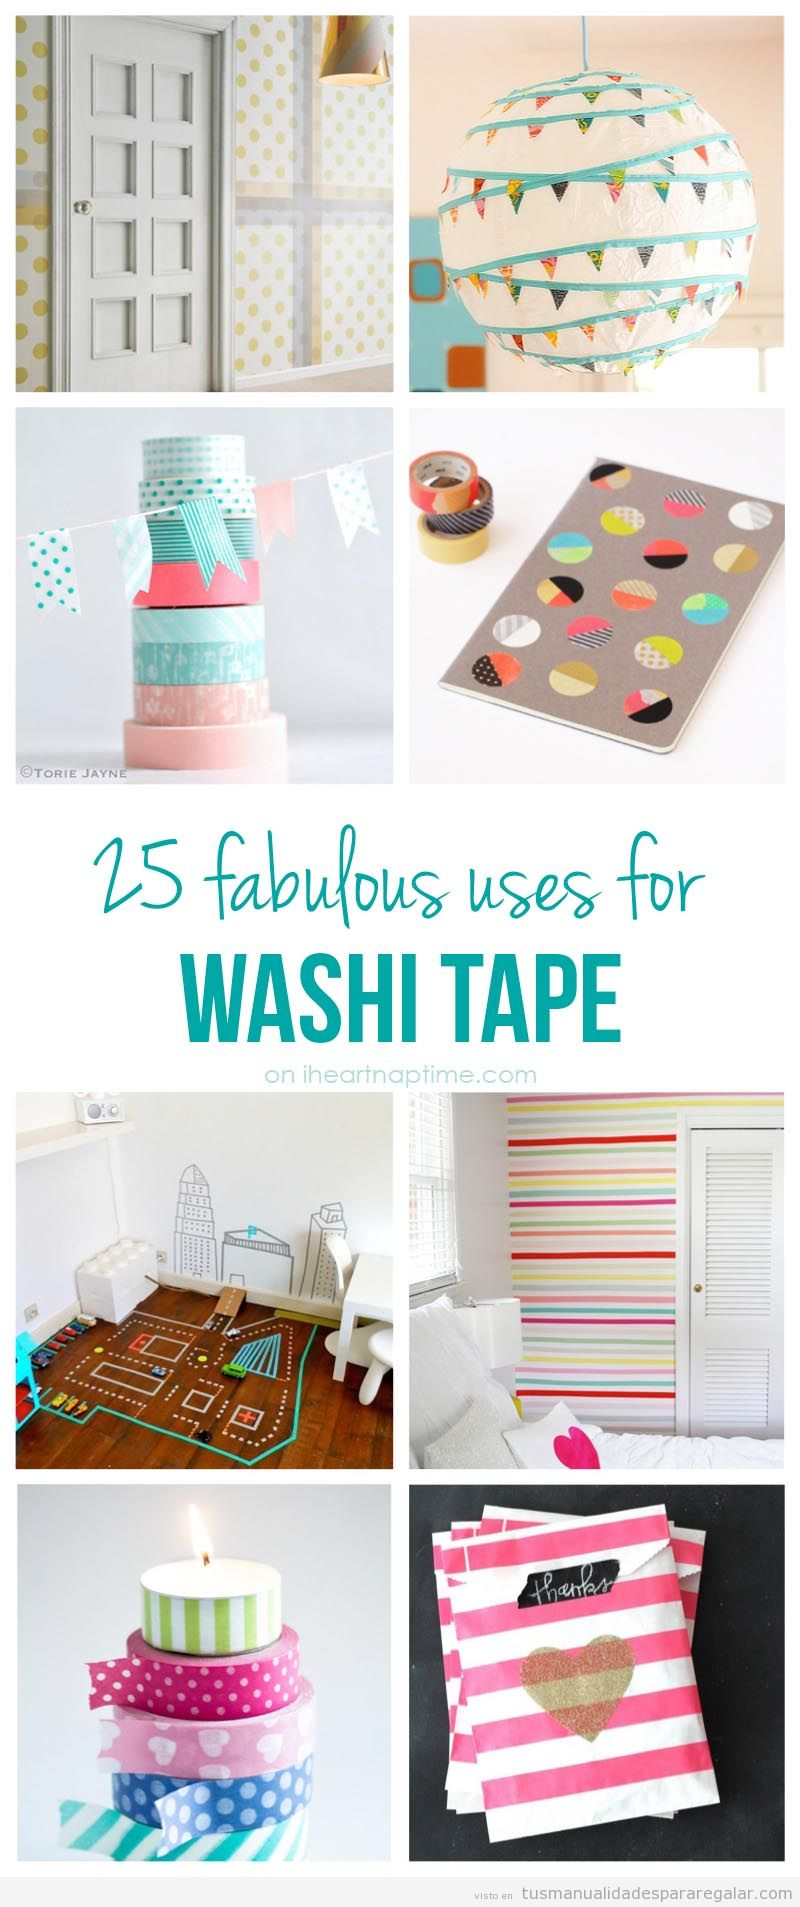 Ideas para decorar con washitape